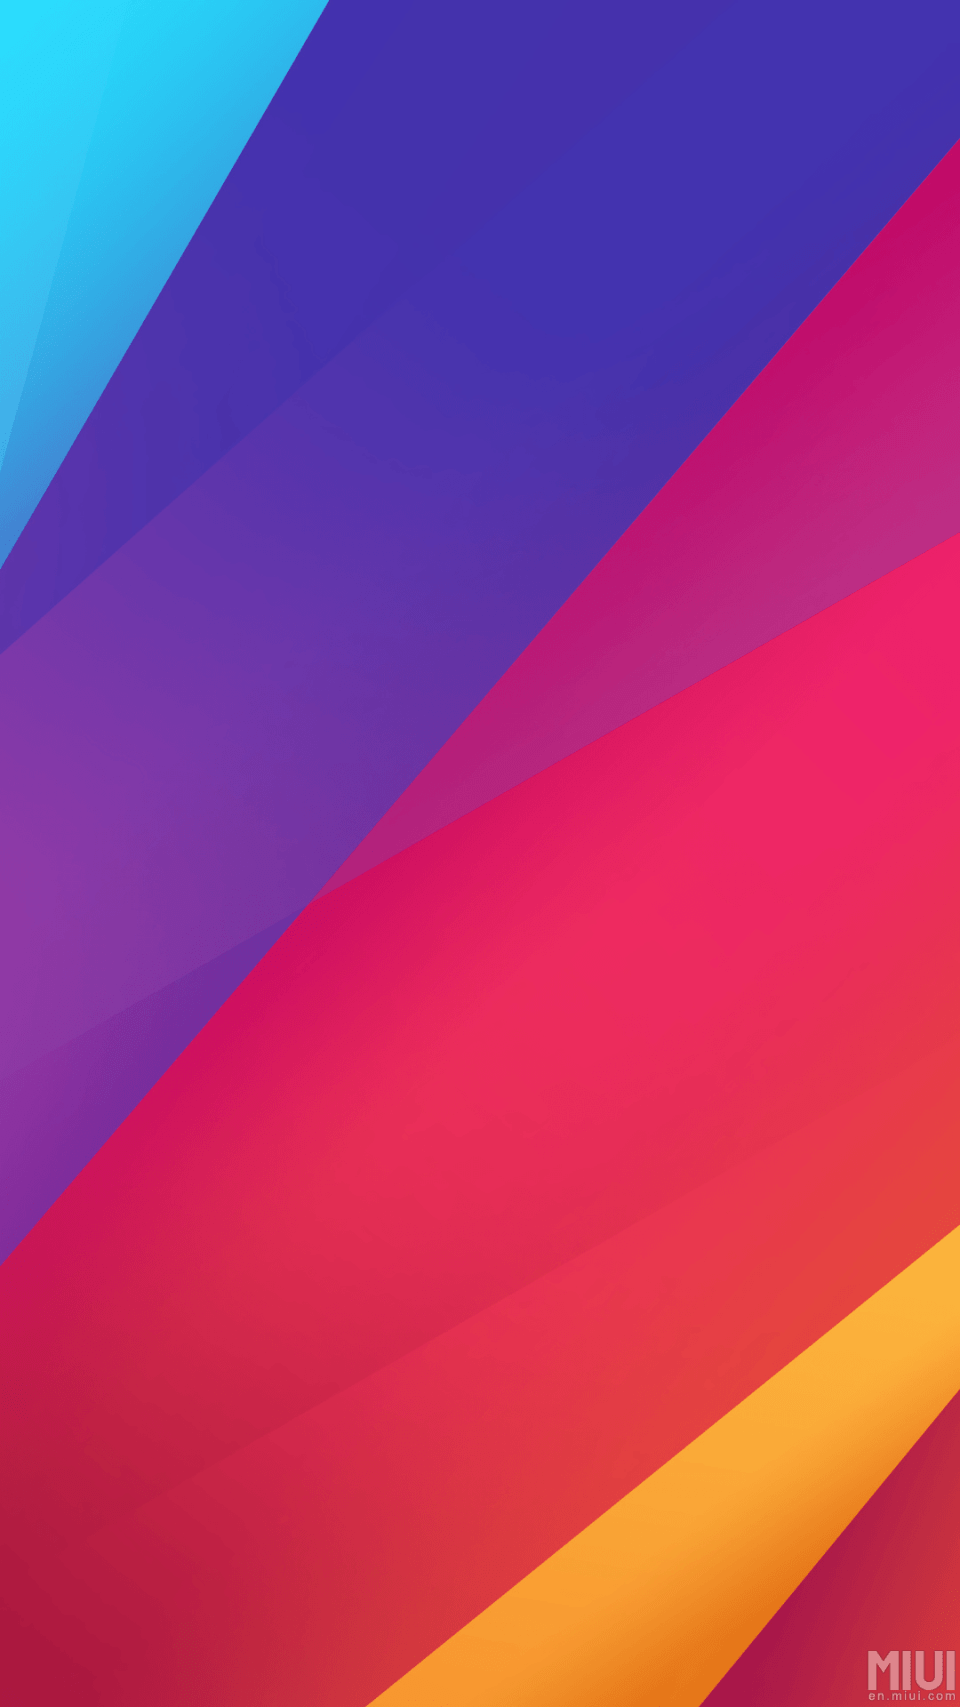 Hd Wallpapers Redmi Note 4g Floweryred2com